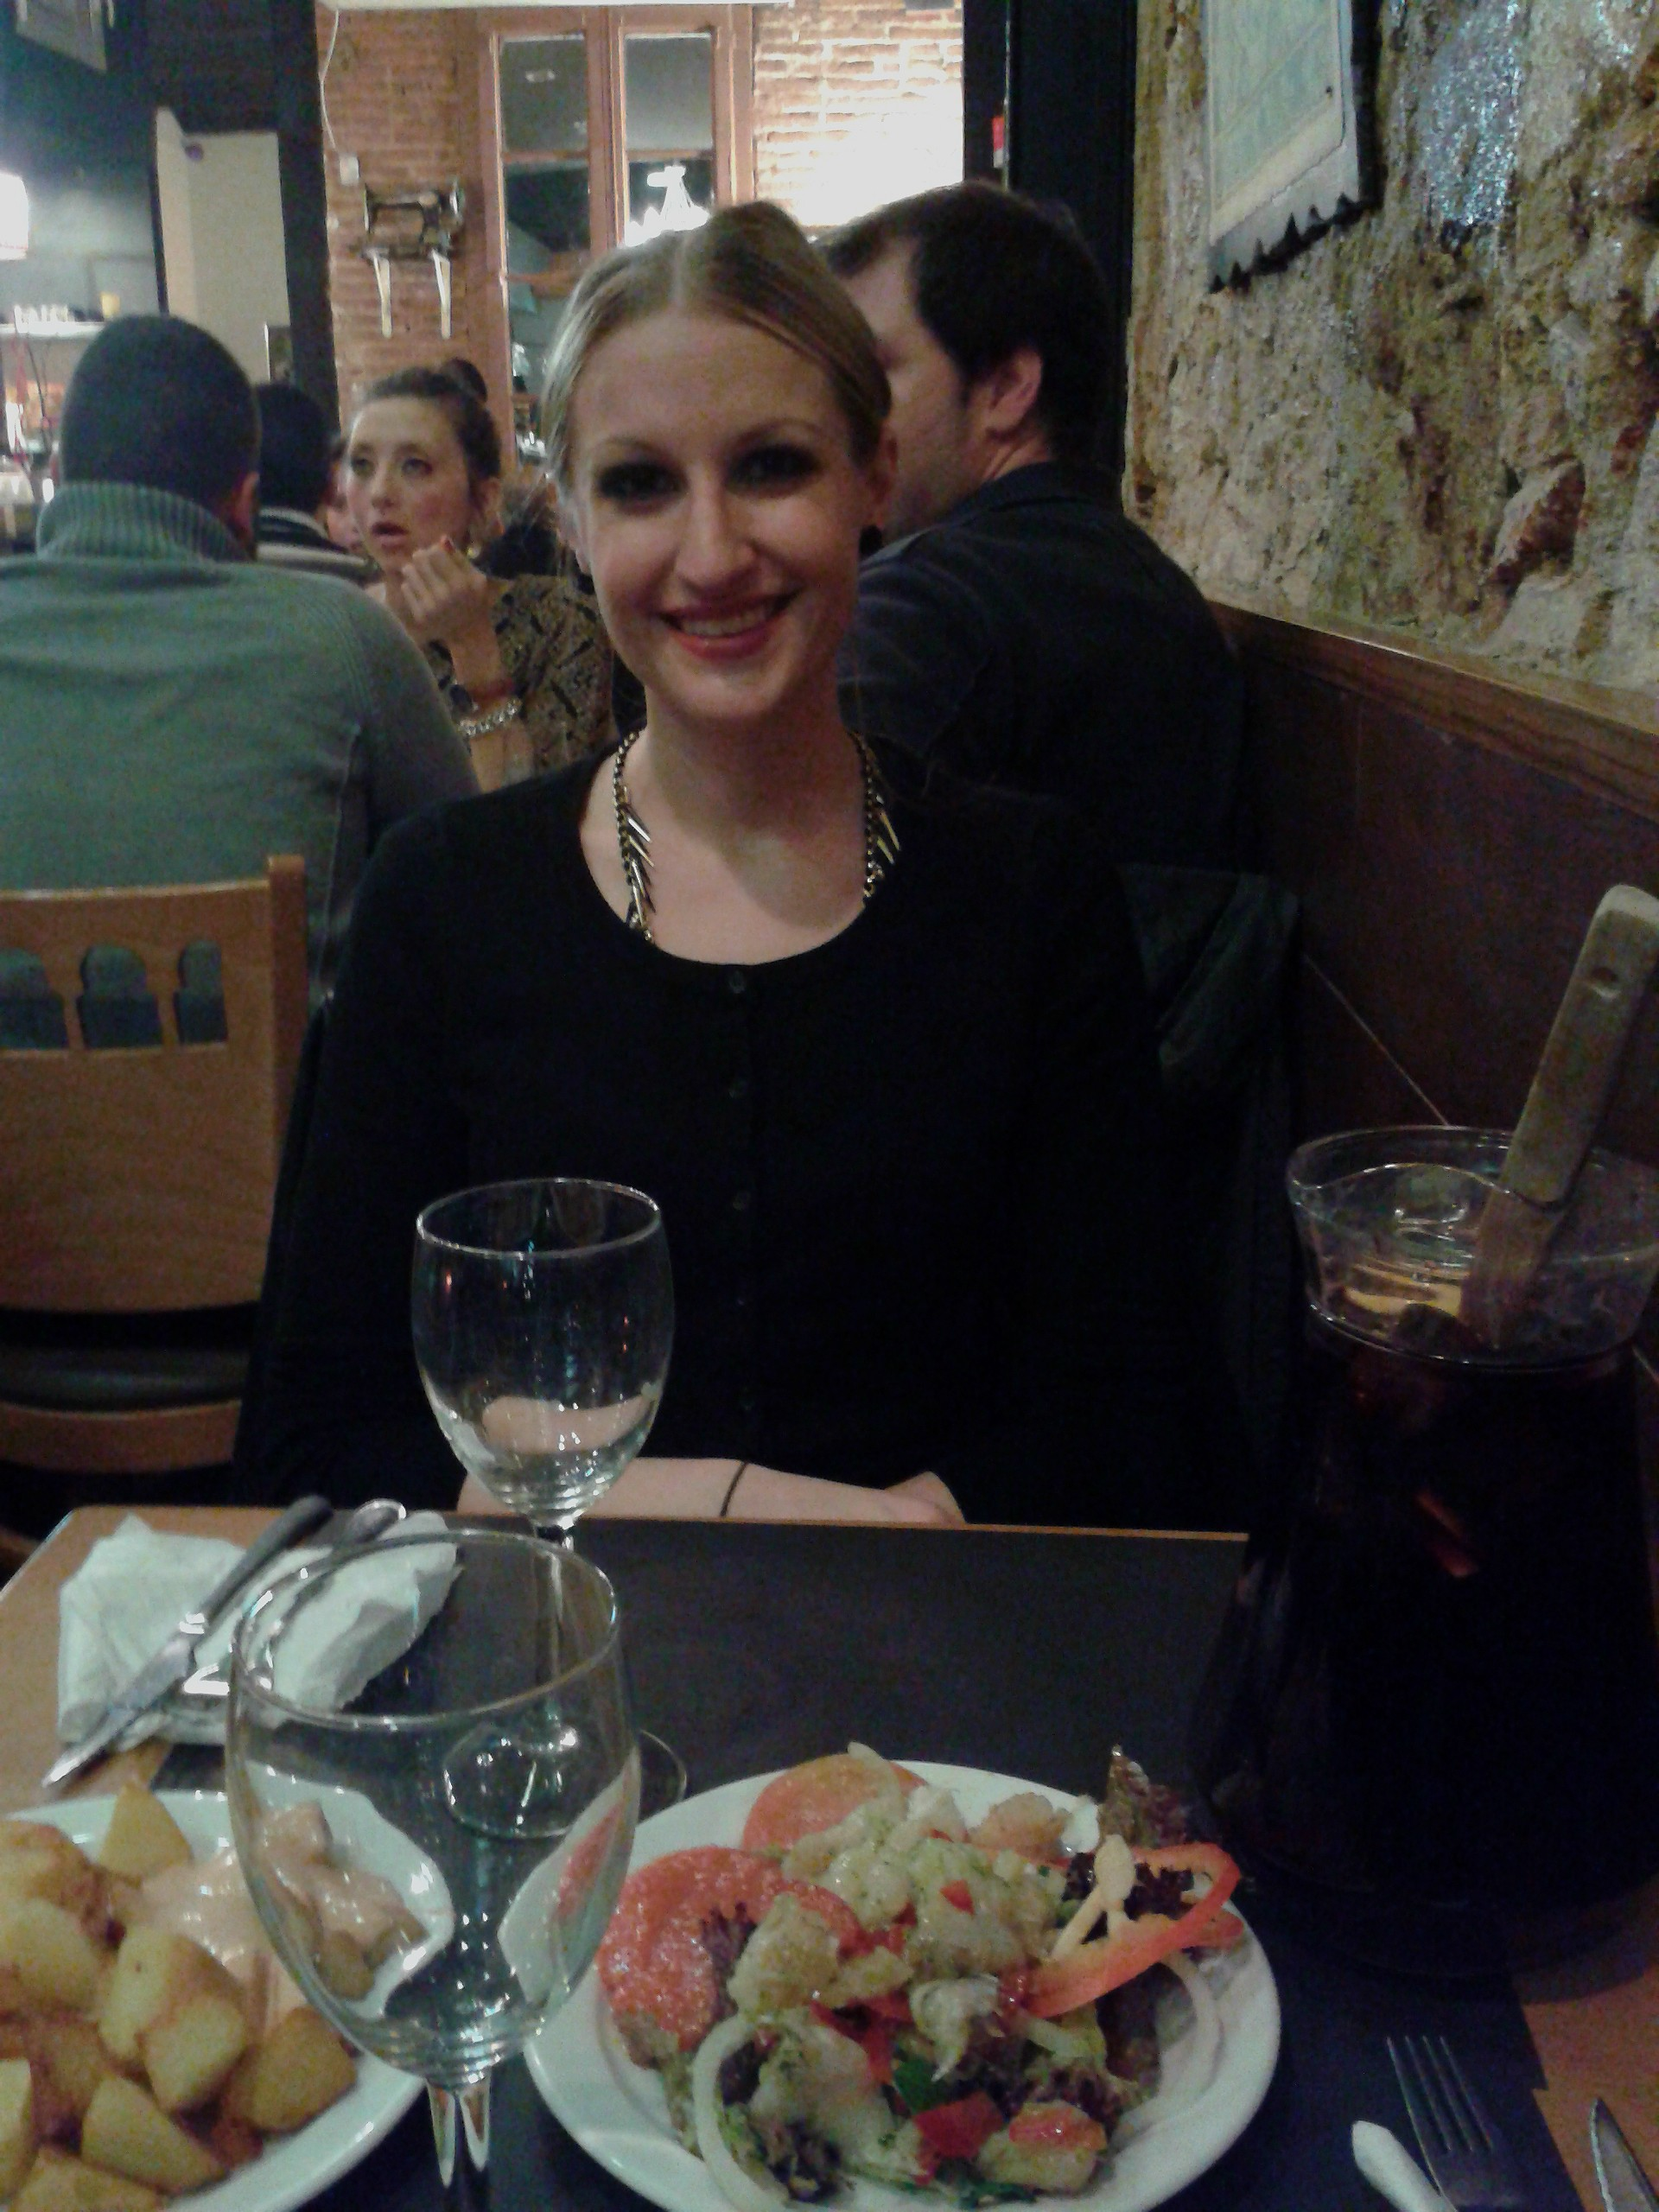 2014 Travel Review: Eating tapas Barcelona | Todd's Travels Travel Blog